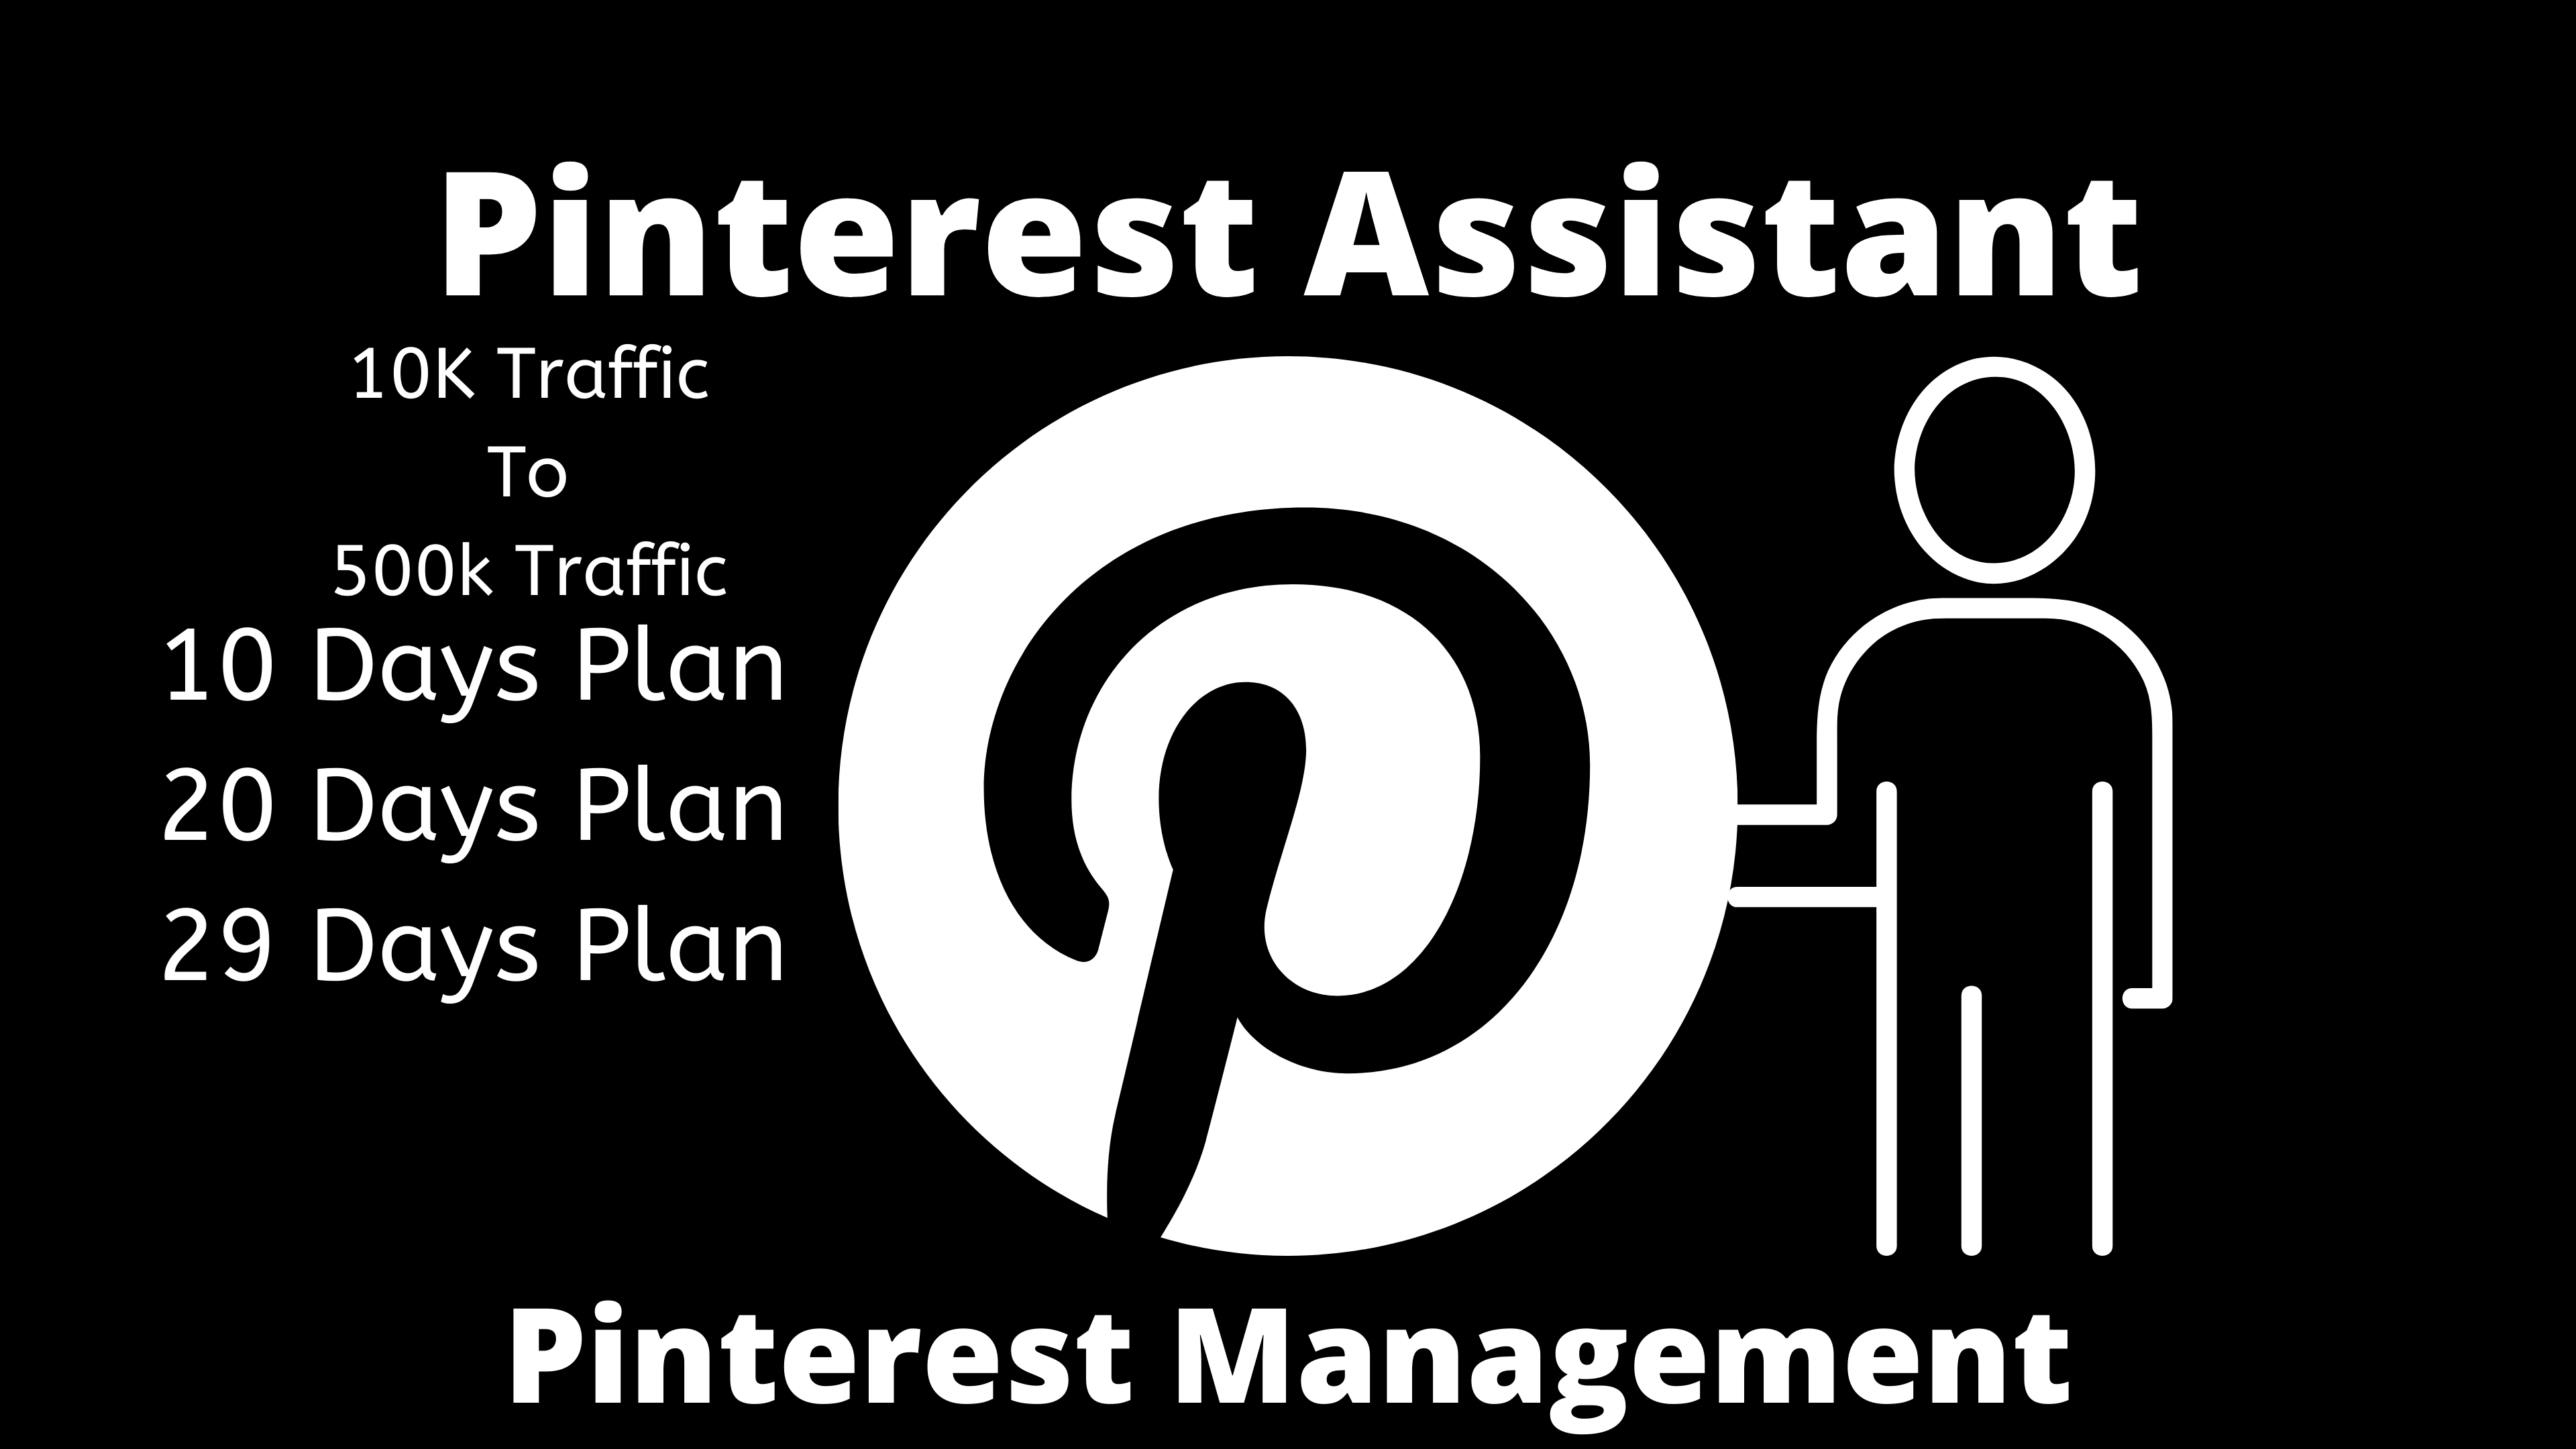 do pinterest marketing and be your virtual assistant